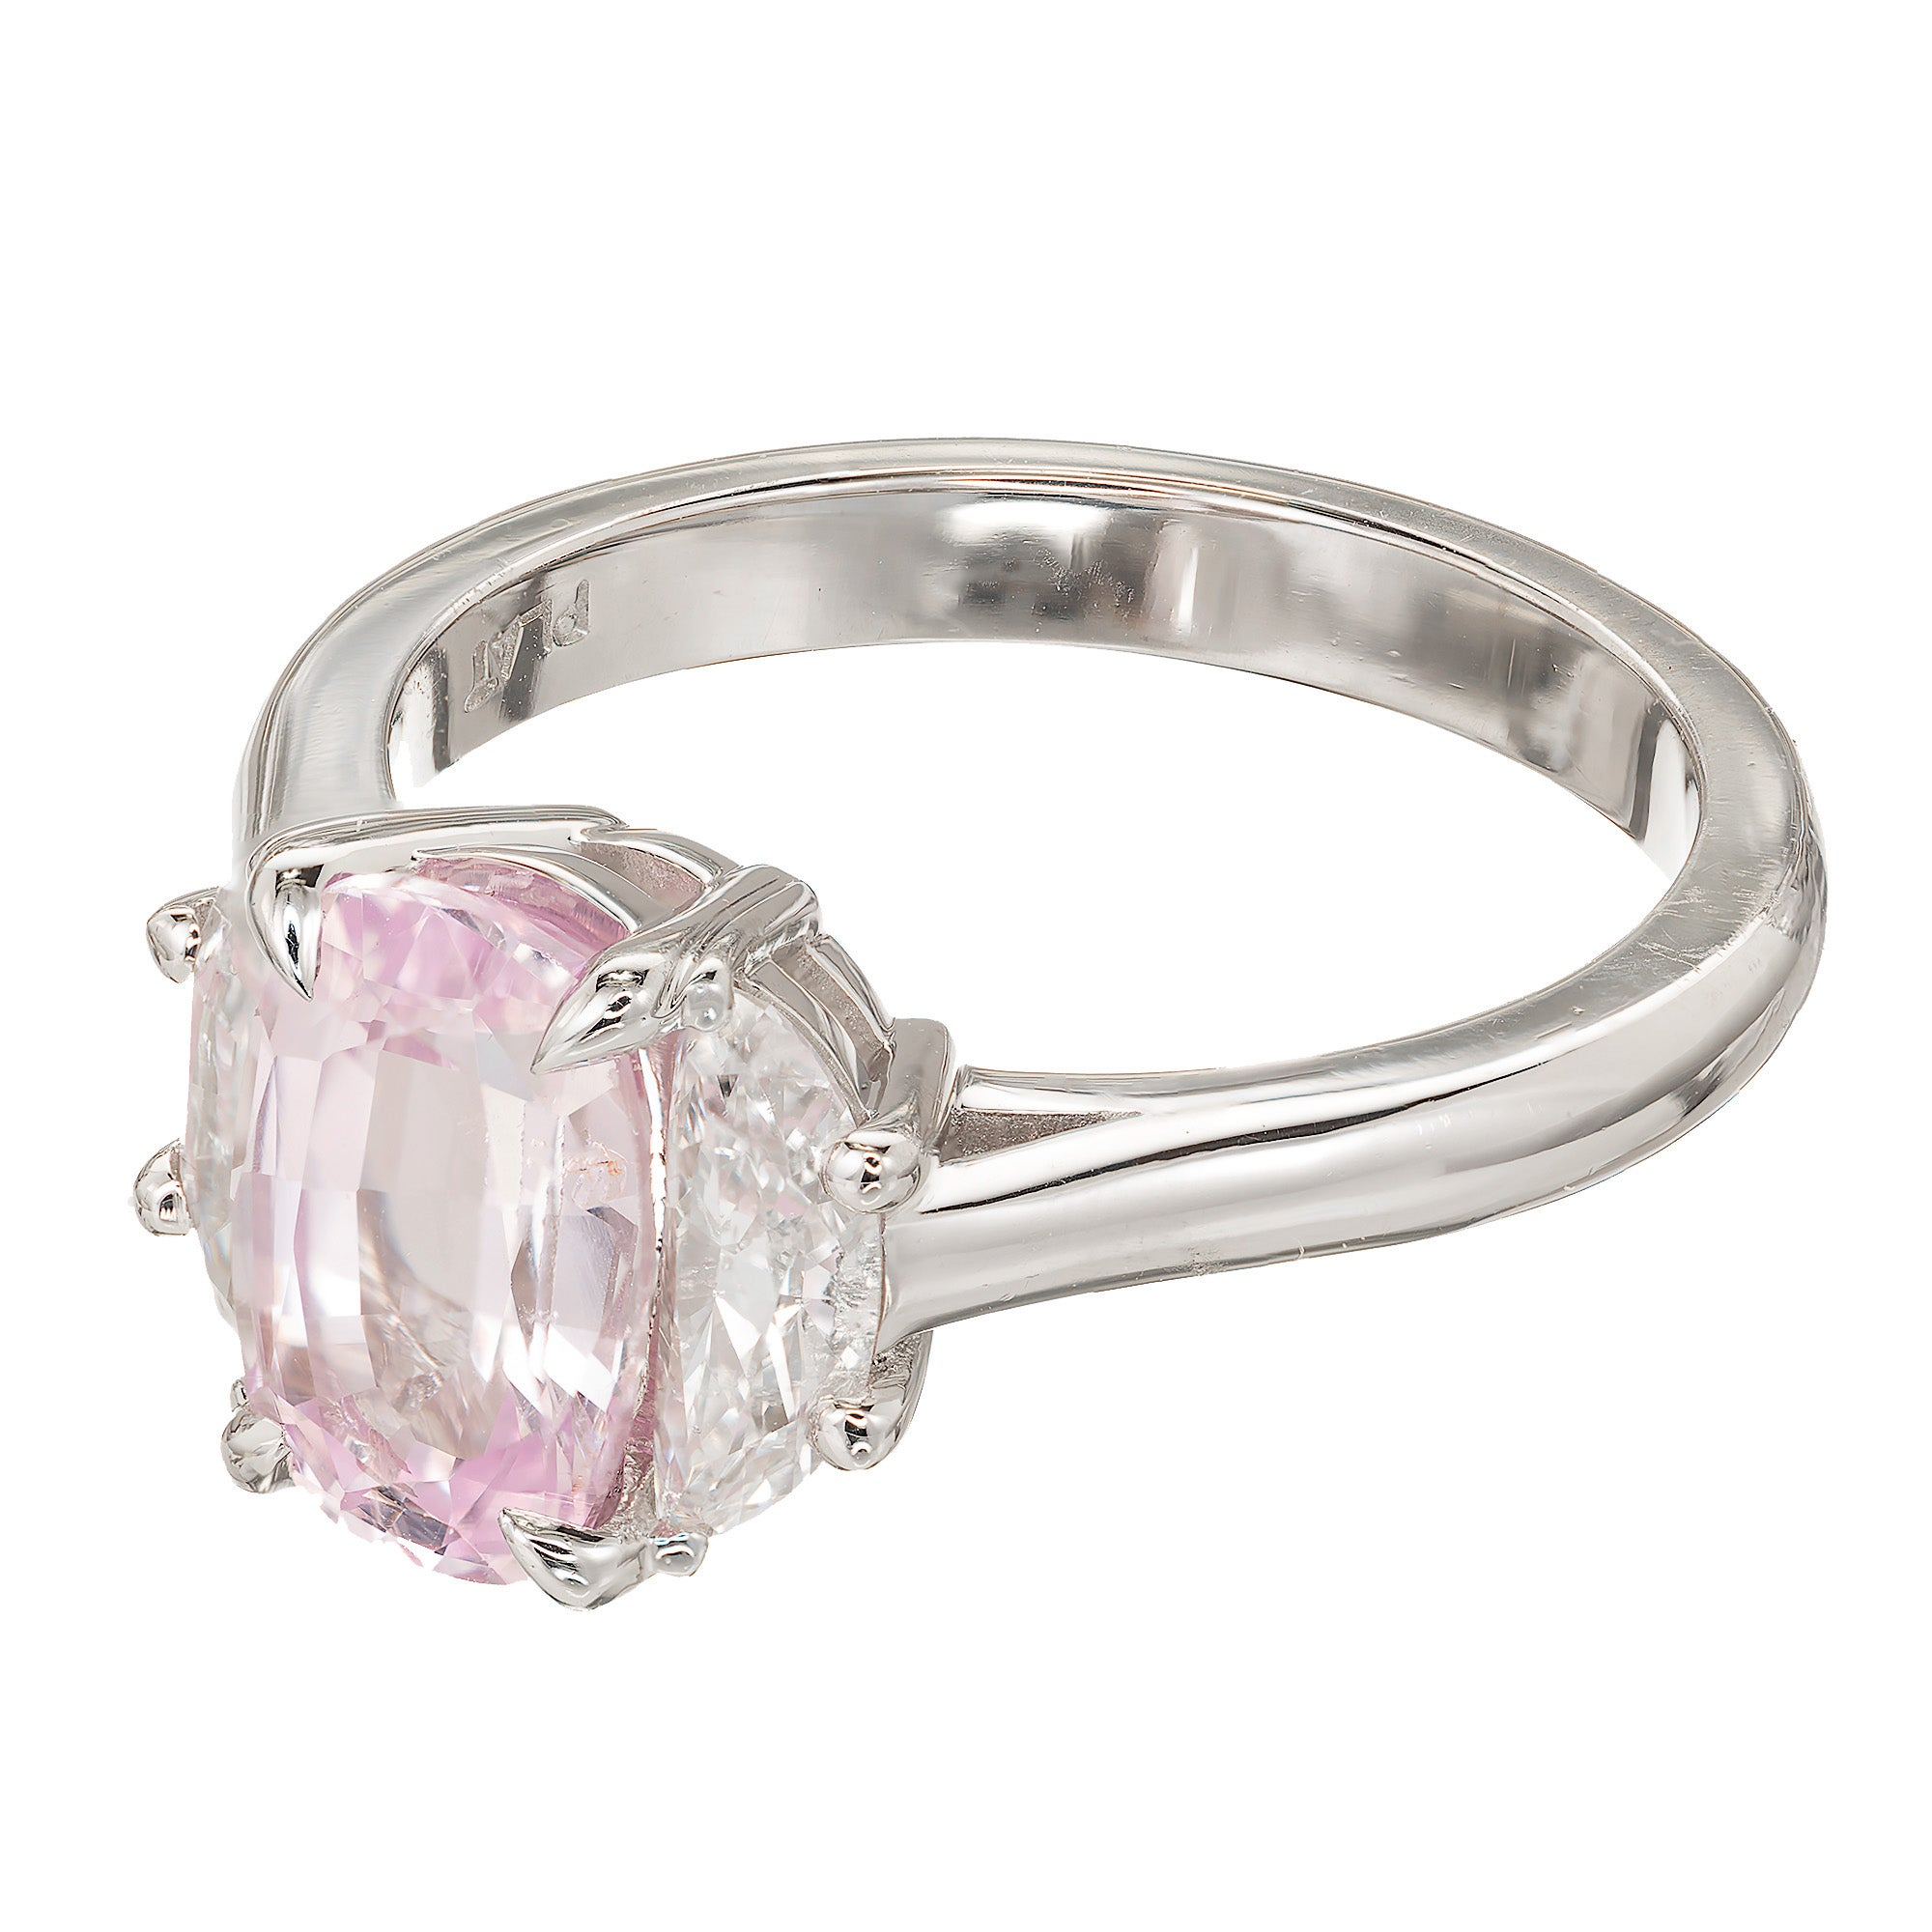 stone product ring london bespoke engagement rings finest contemporary diamond jewellery handmade in the pink